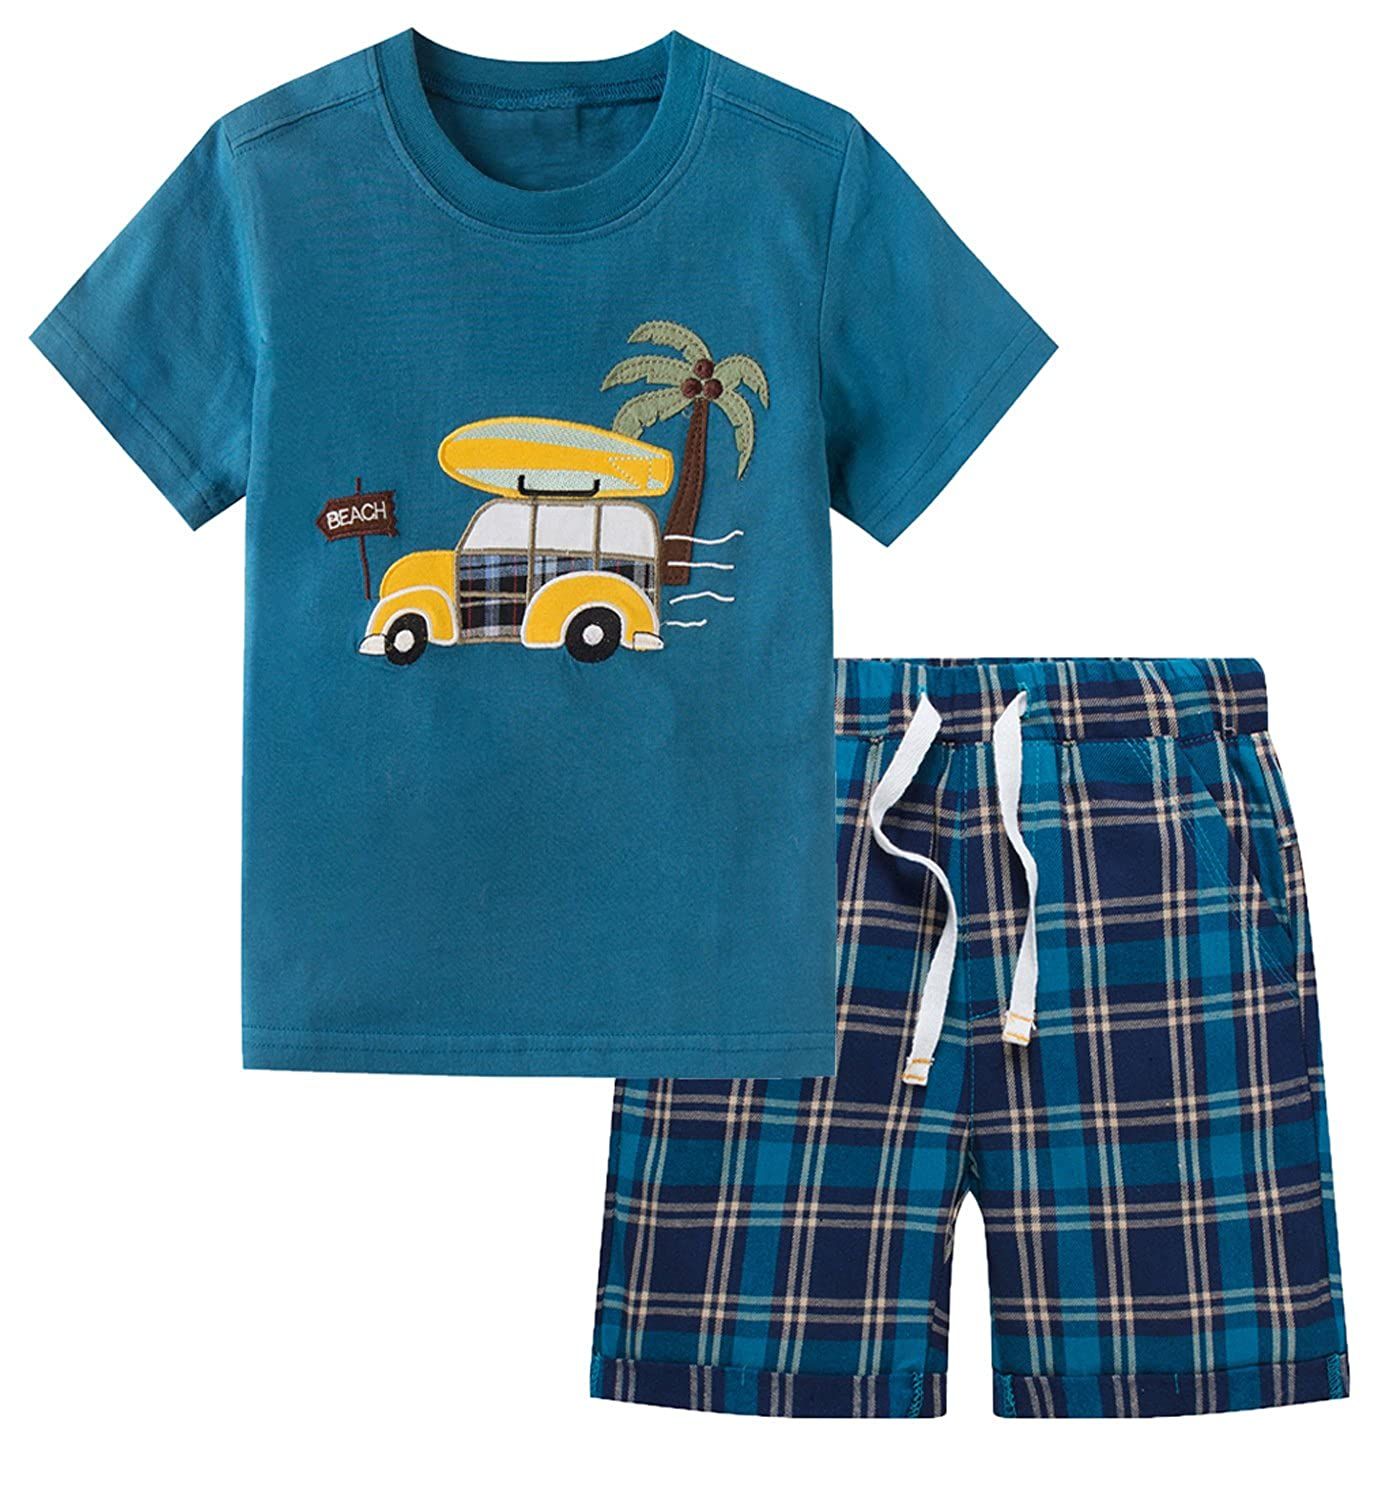 Little Boys' Cotton Clothing Short Sets Summer Cotton Shirts Pants Toddler Clothes